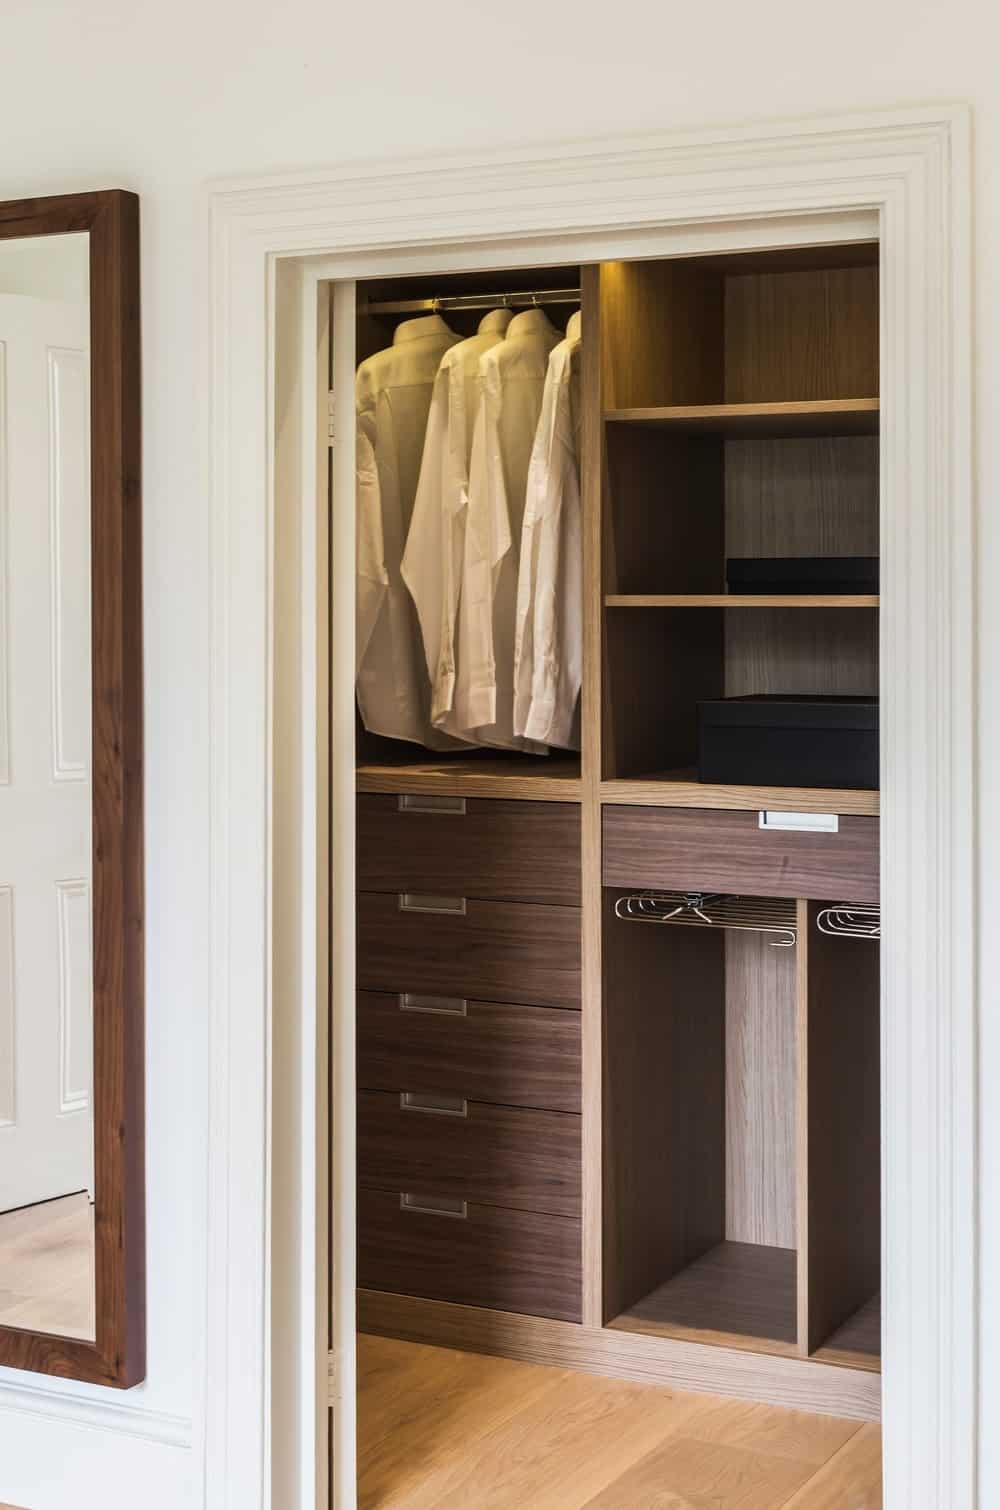 101 Luxury WalkIn Closet Designs 2019 Pictures